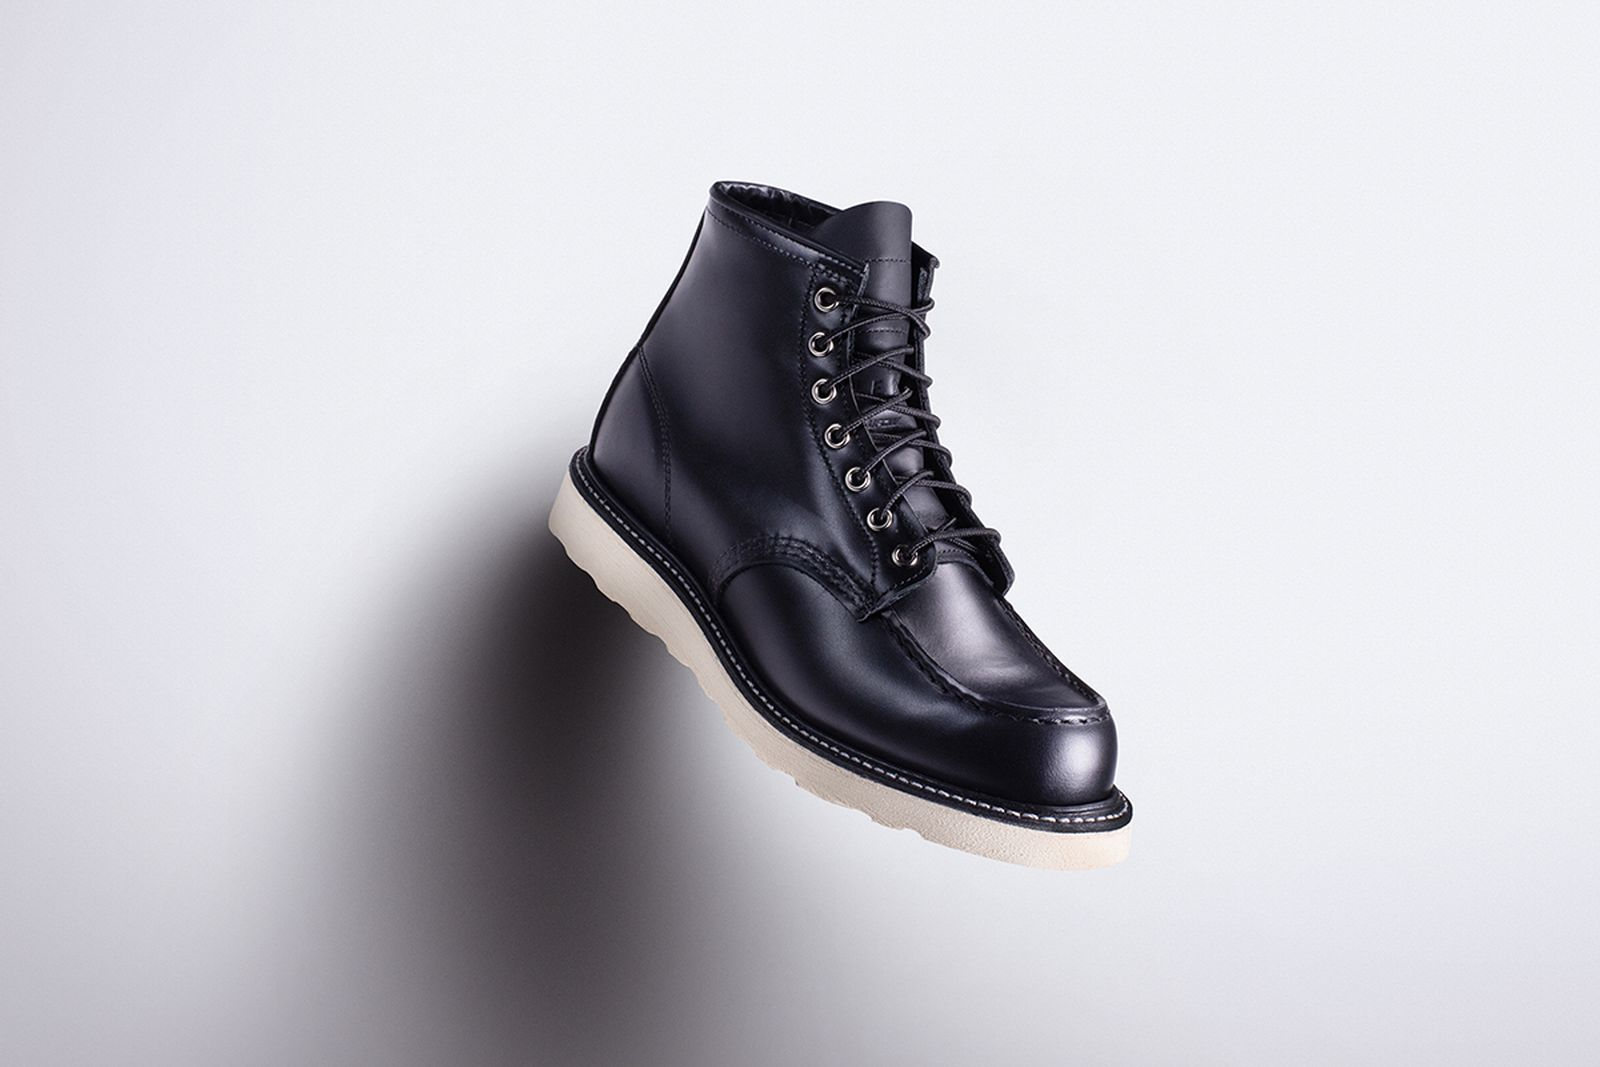 fragment design x Red Wing 4679 Moc Toe